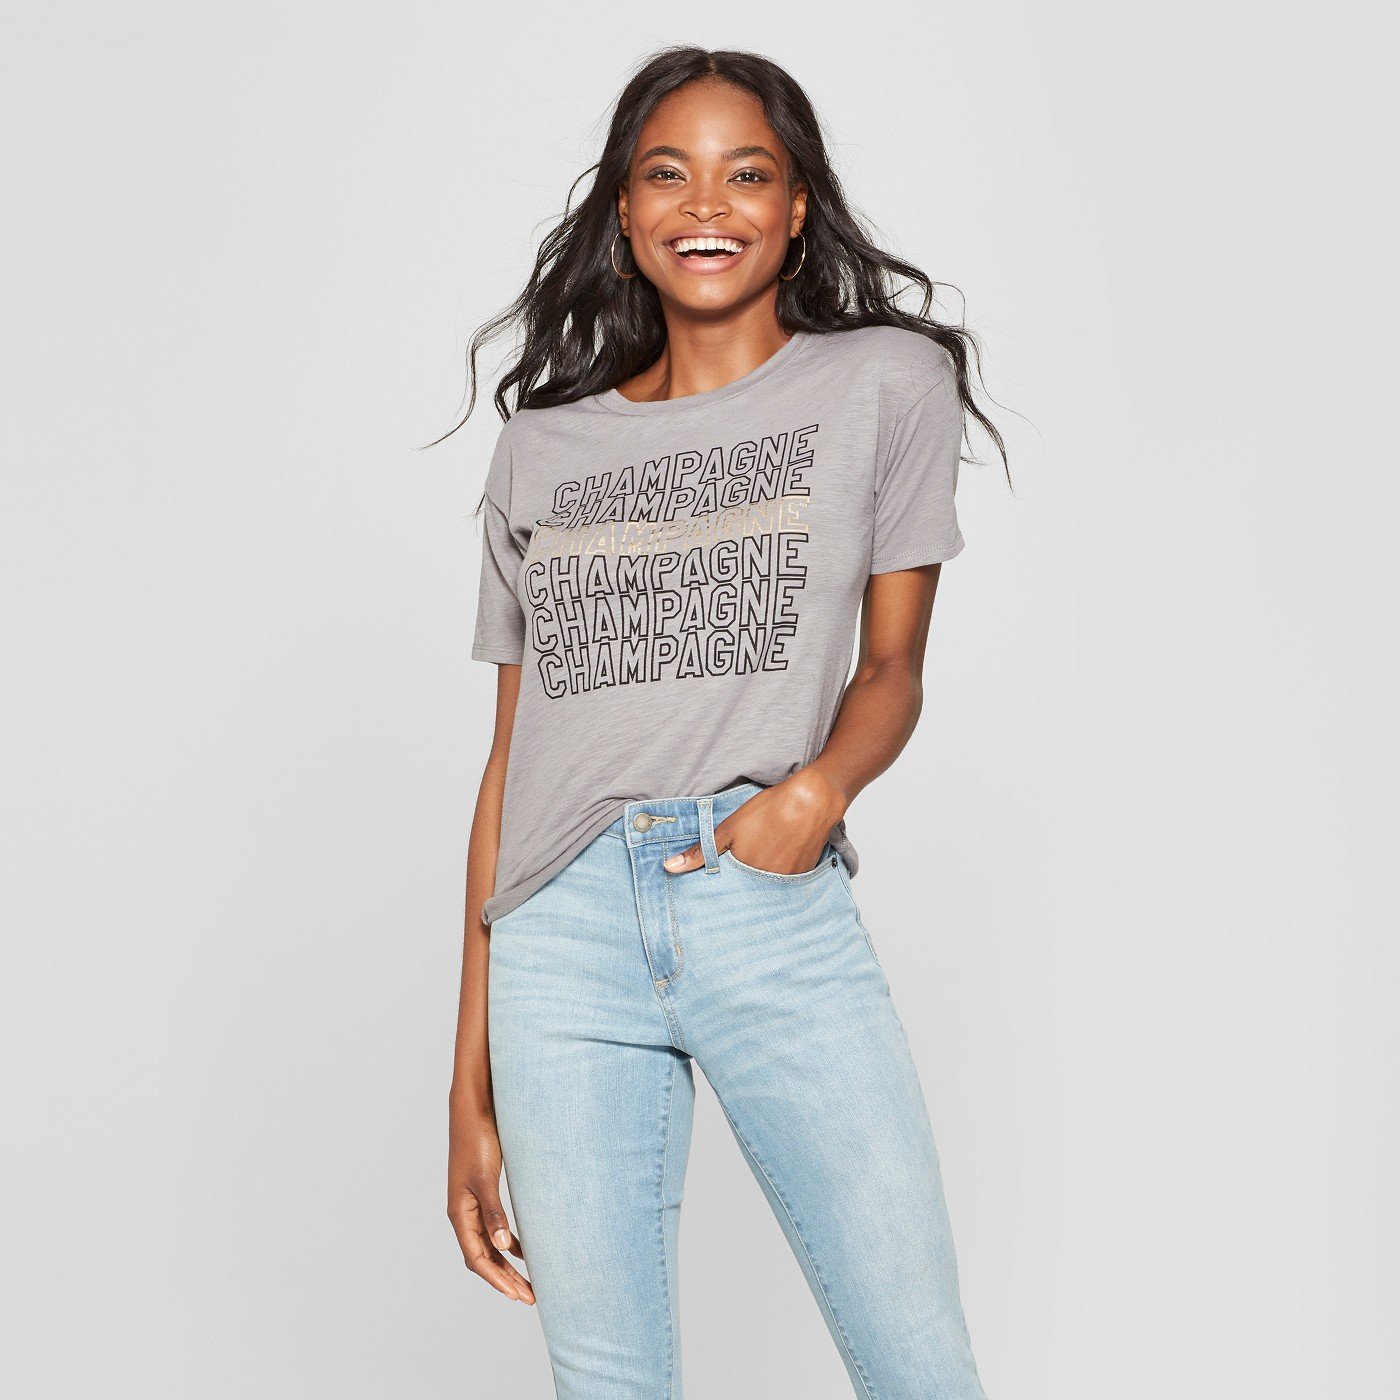 83865dcf86 Women s Short Sleeve Champagne Graphic T-Shirt - Fifth Sun Charcoal XL -  image 1